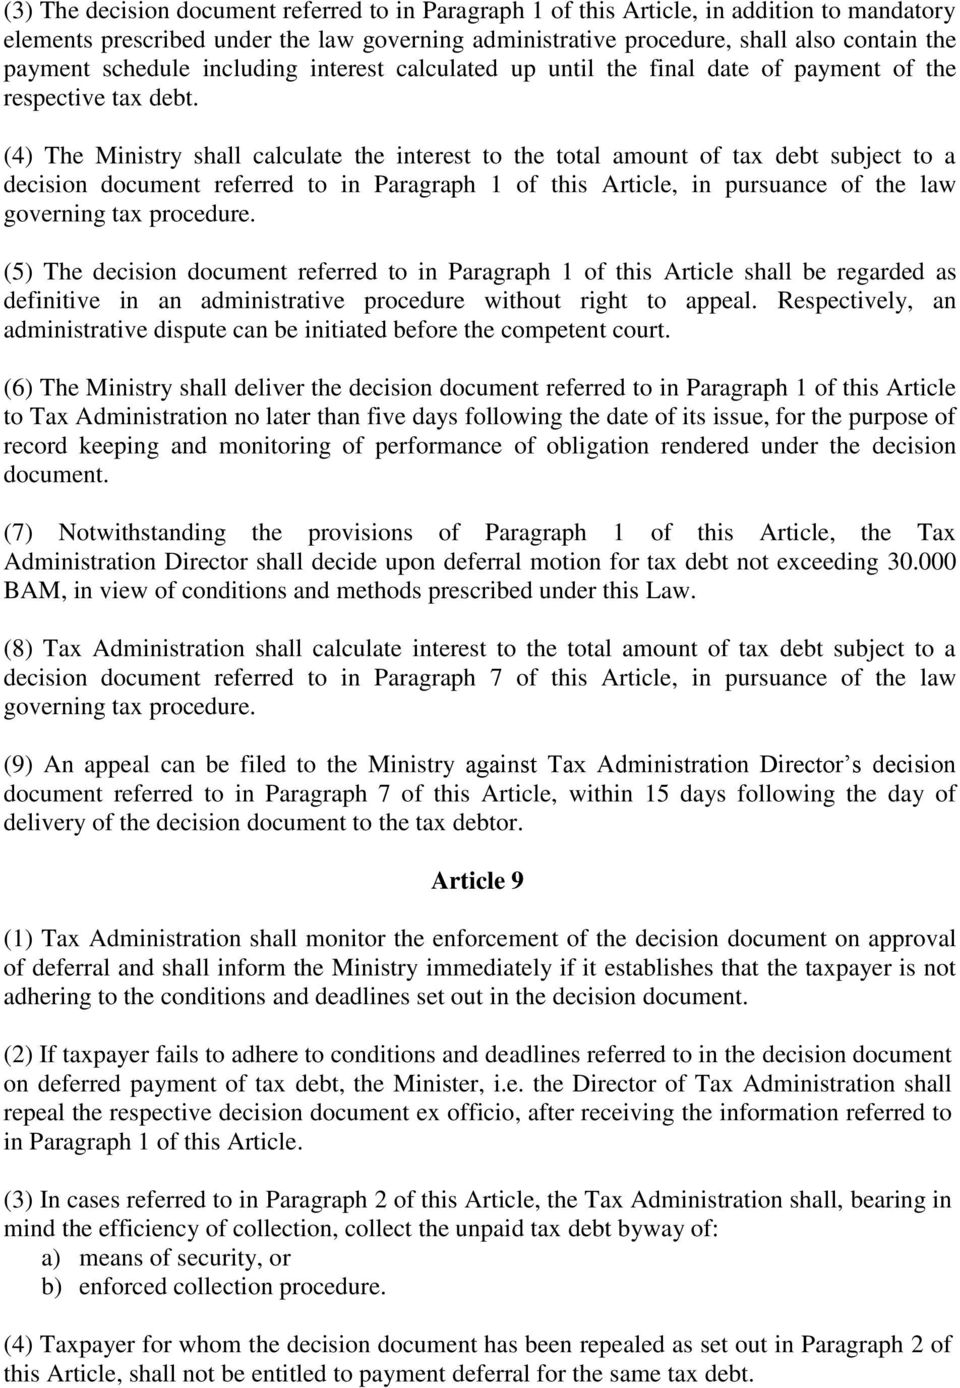 (4) The Ministry shall calculate the interest to the total amount of tax debt subject to a decision document referred to in Paragraph 1 of this Article, in pursuance of the law governing tax